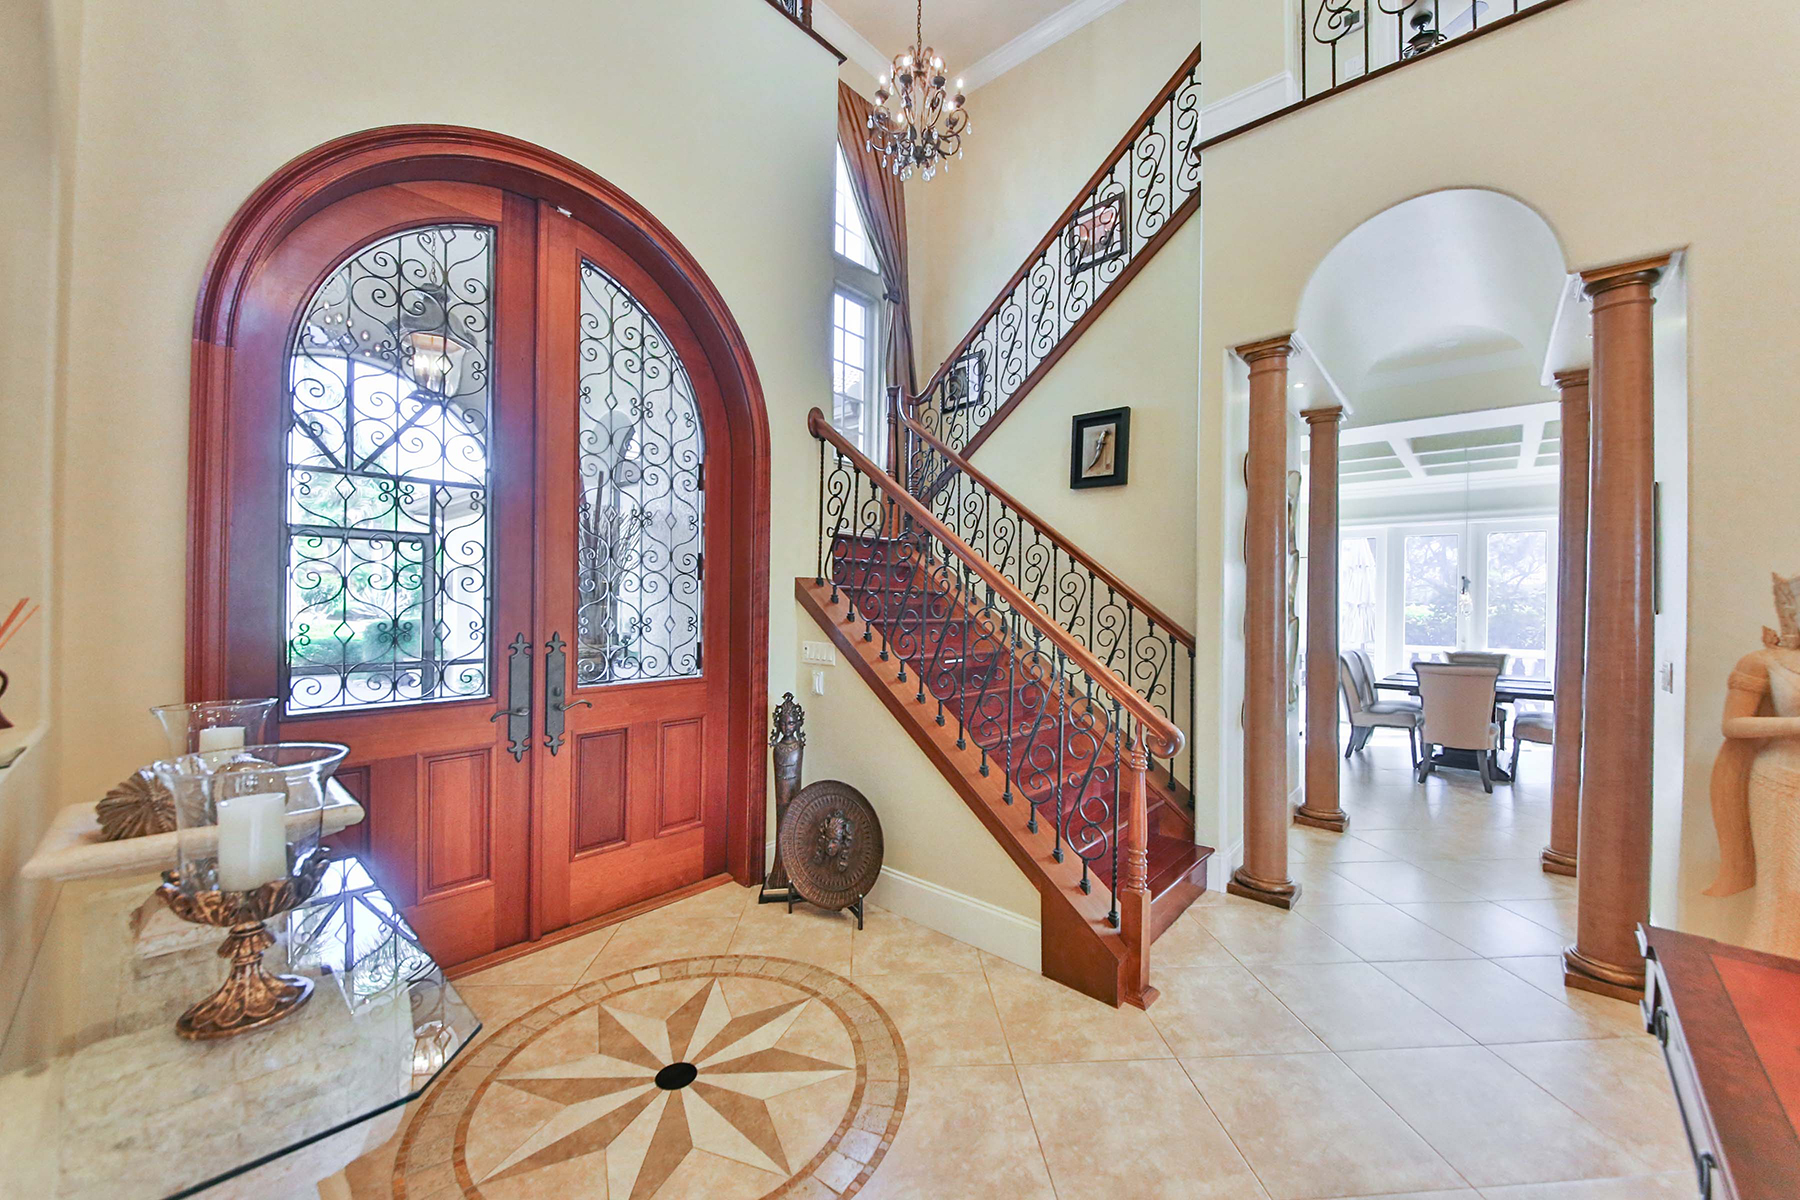 Single Family Home for Sale at LELY RESORT - TIGER ISLAND ESTATES 7912 Tiger Lily Dr, Naples, Florida 34113 United States